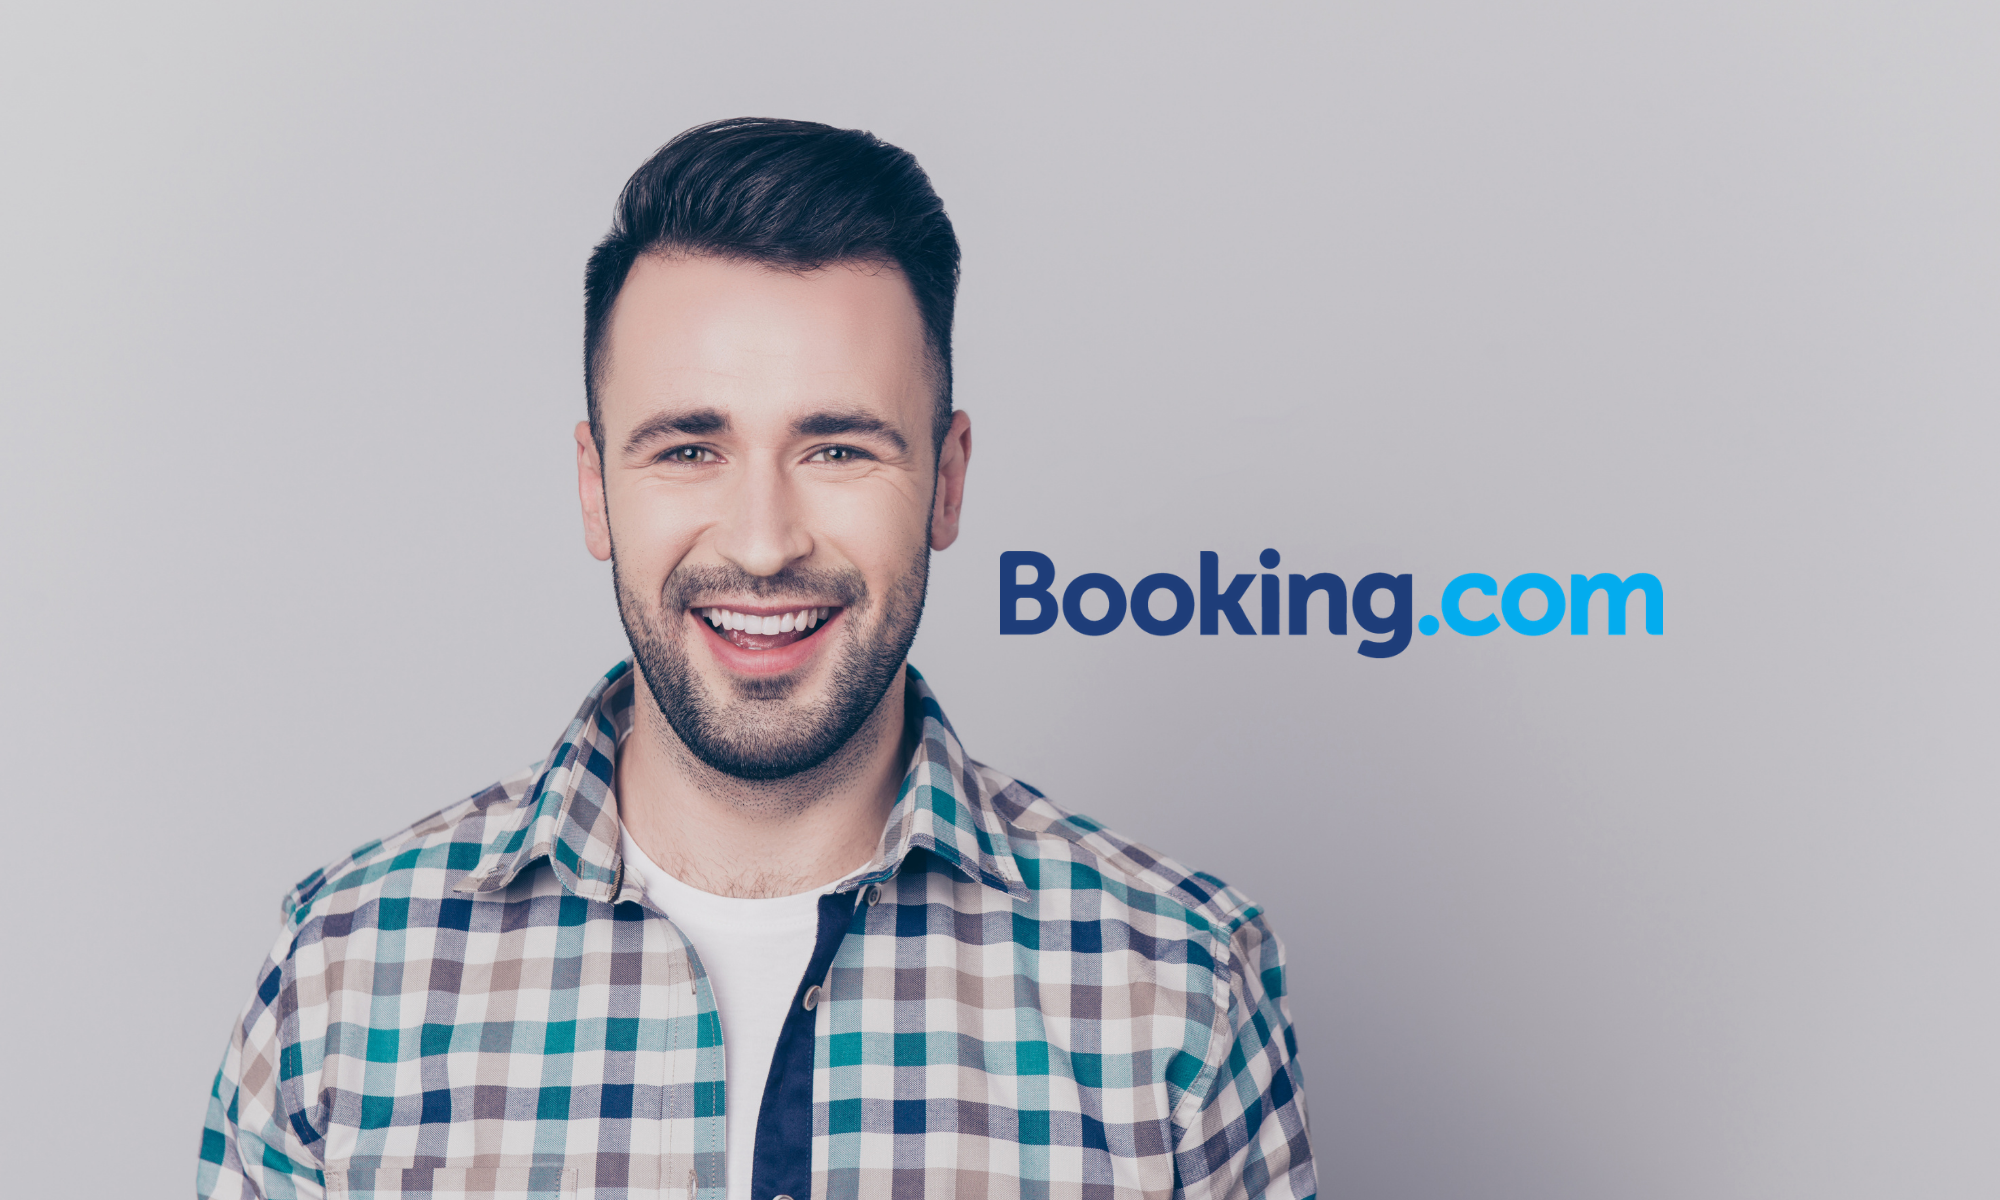 Upgrade your Booking.com performance with these tips